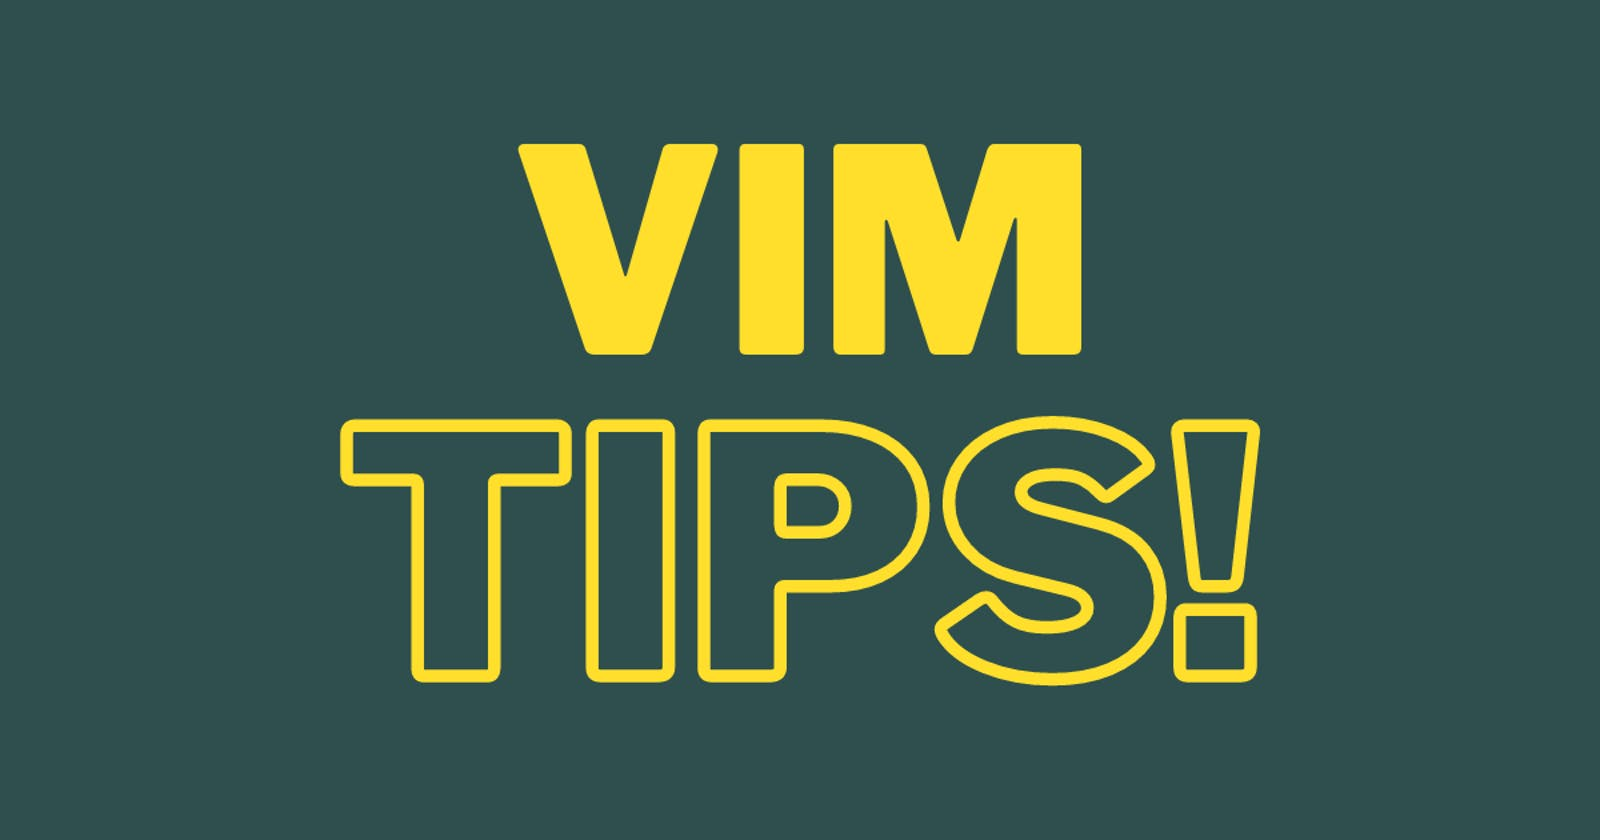 How to Wrap HTML Element(s) With Another HTML Element in Vim